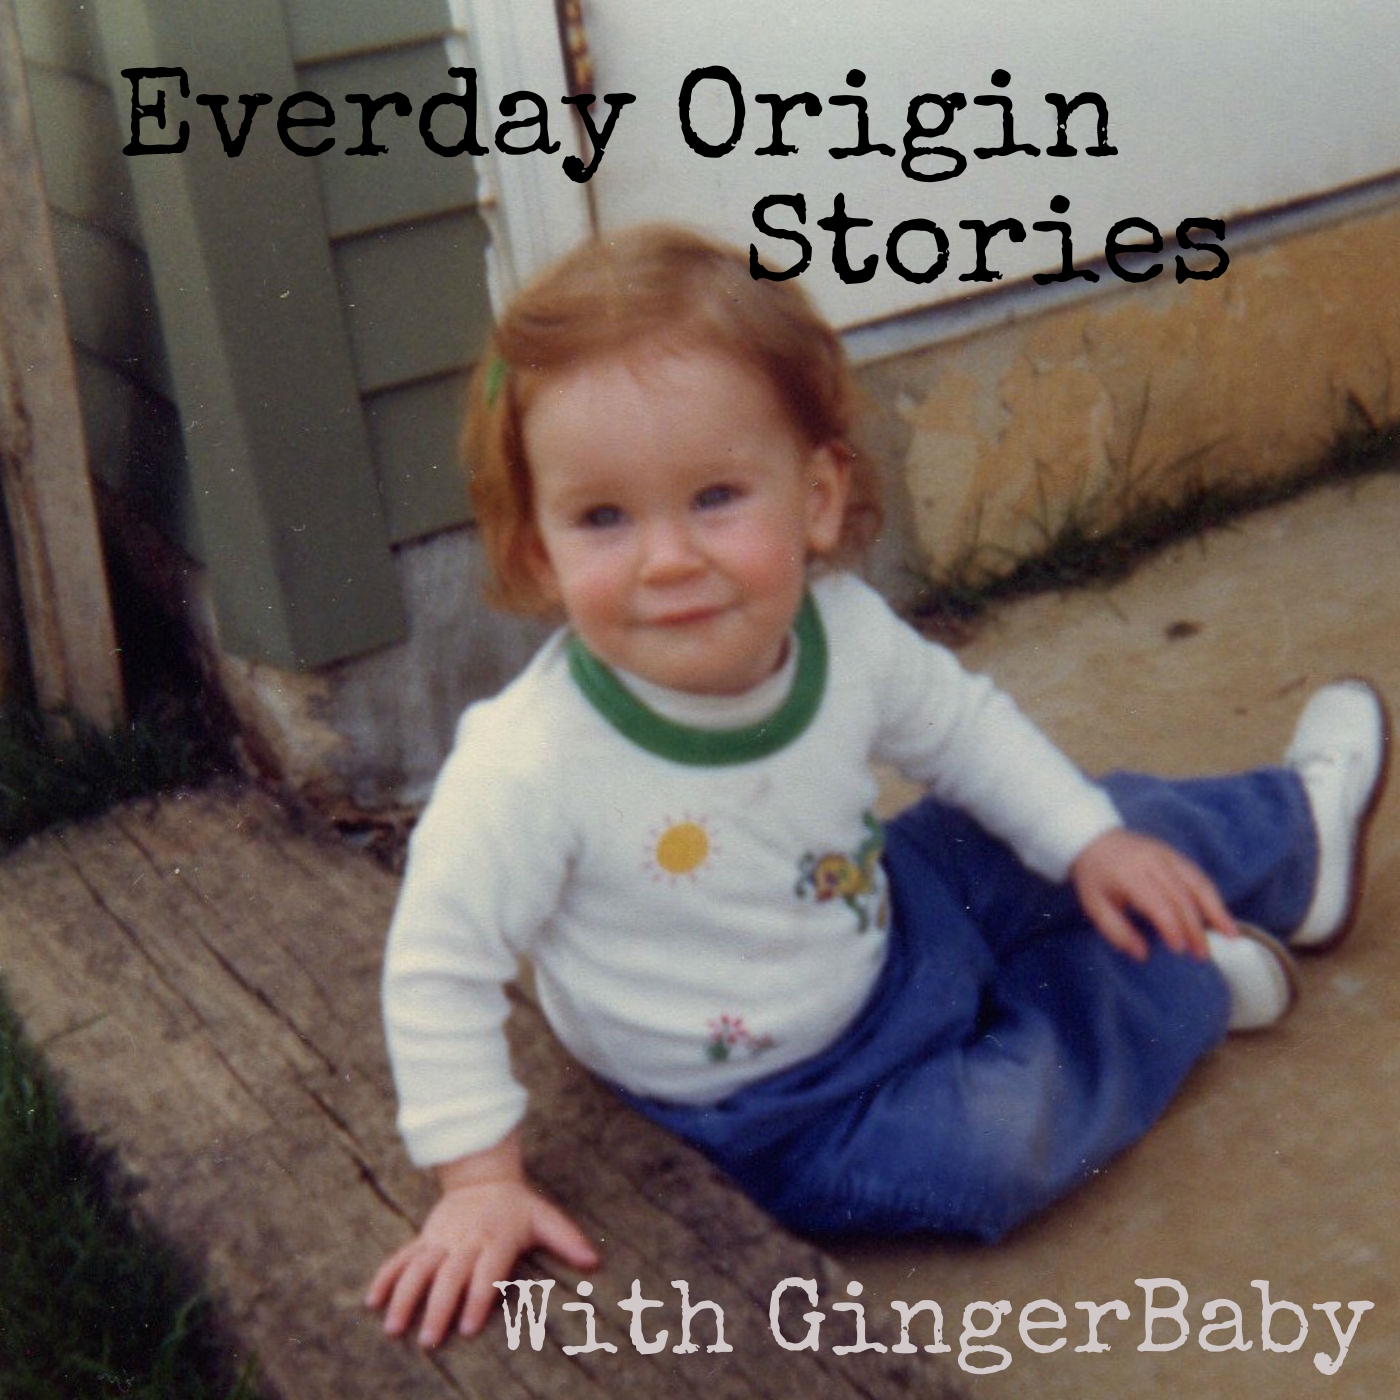 Everyday Origin Stories with GingerBaby - GingerBaby